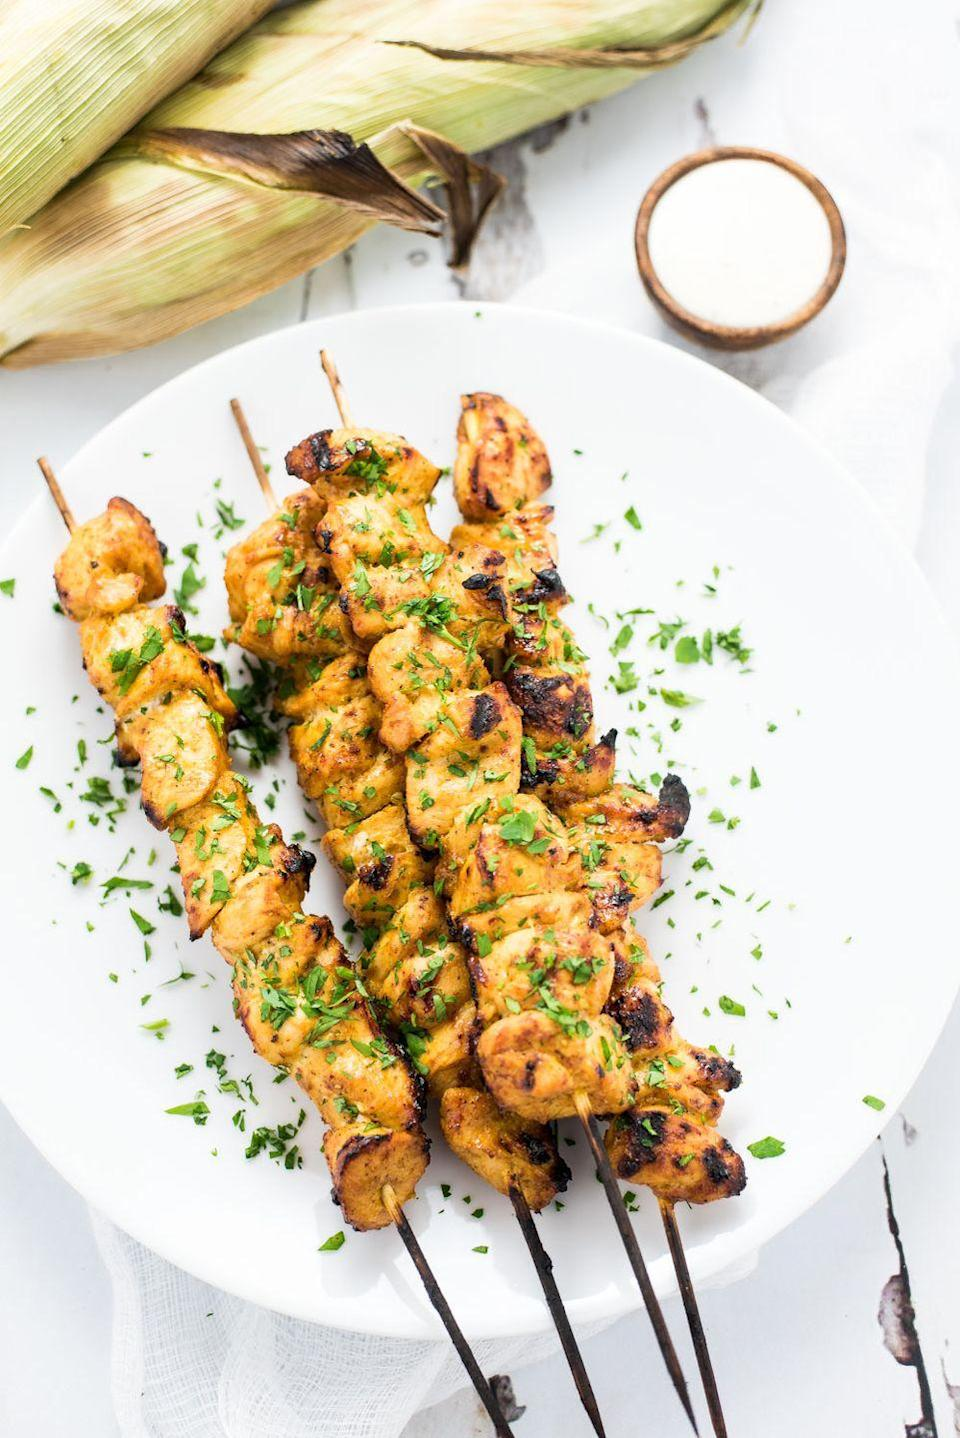 """<p>These flavorful curry chicken skewers could be a starter or a main dish at your dinner party served over a bed of rice.</p><p><strong>Get the recipe at <a href=""""http://cookingandbeer.com/2016/06/grilled-mango-curry-chicken-skewers/"""" rel=""""nofollow noopener"""" target=""""_blank"""" data-ylk=""""slk:Cooking and Beer"""" class=""""link rapid-noclick-resp"""">Cooking and Beer</a>.</strong> </p>"""